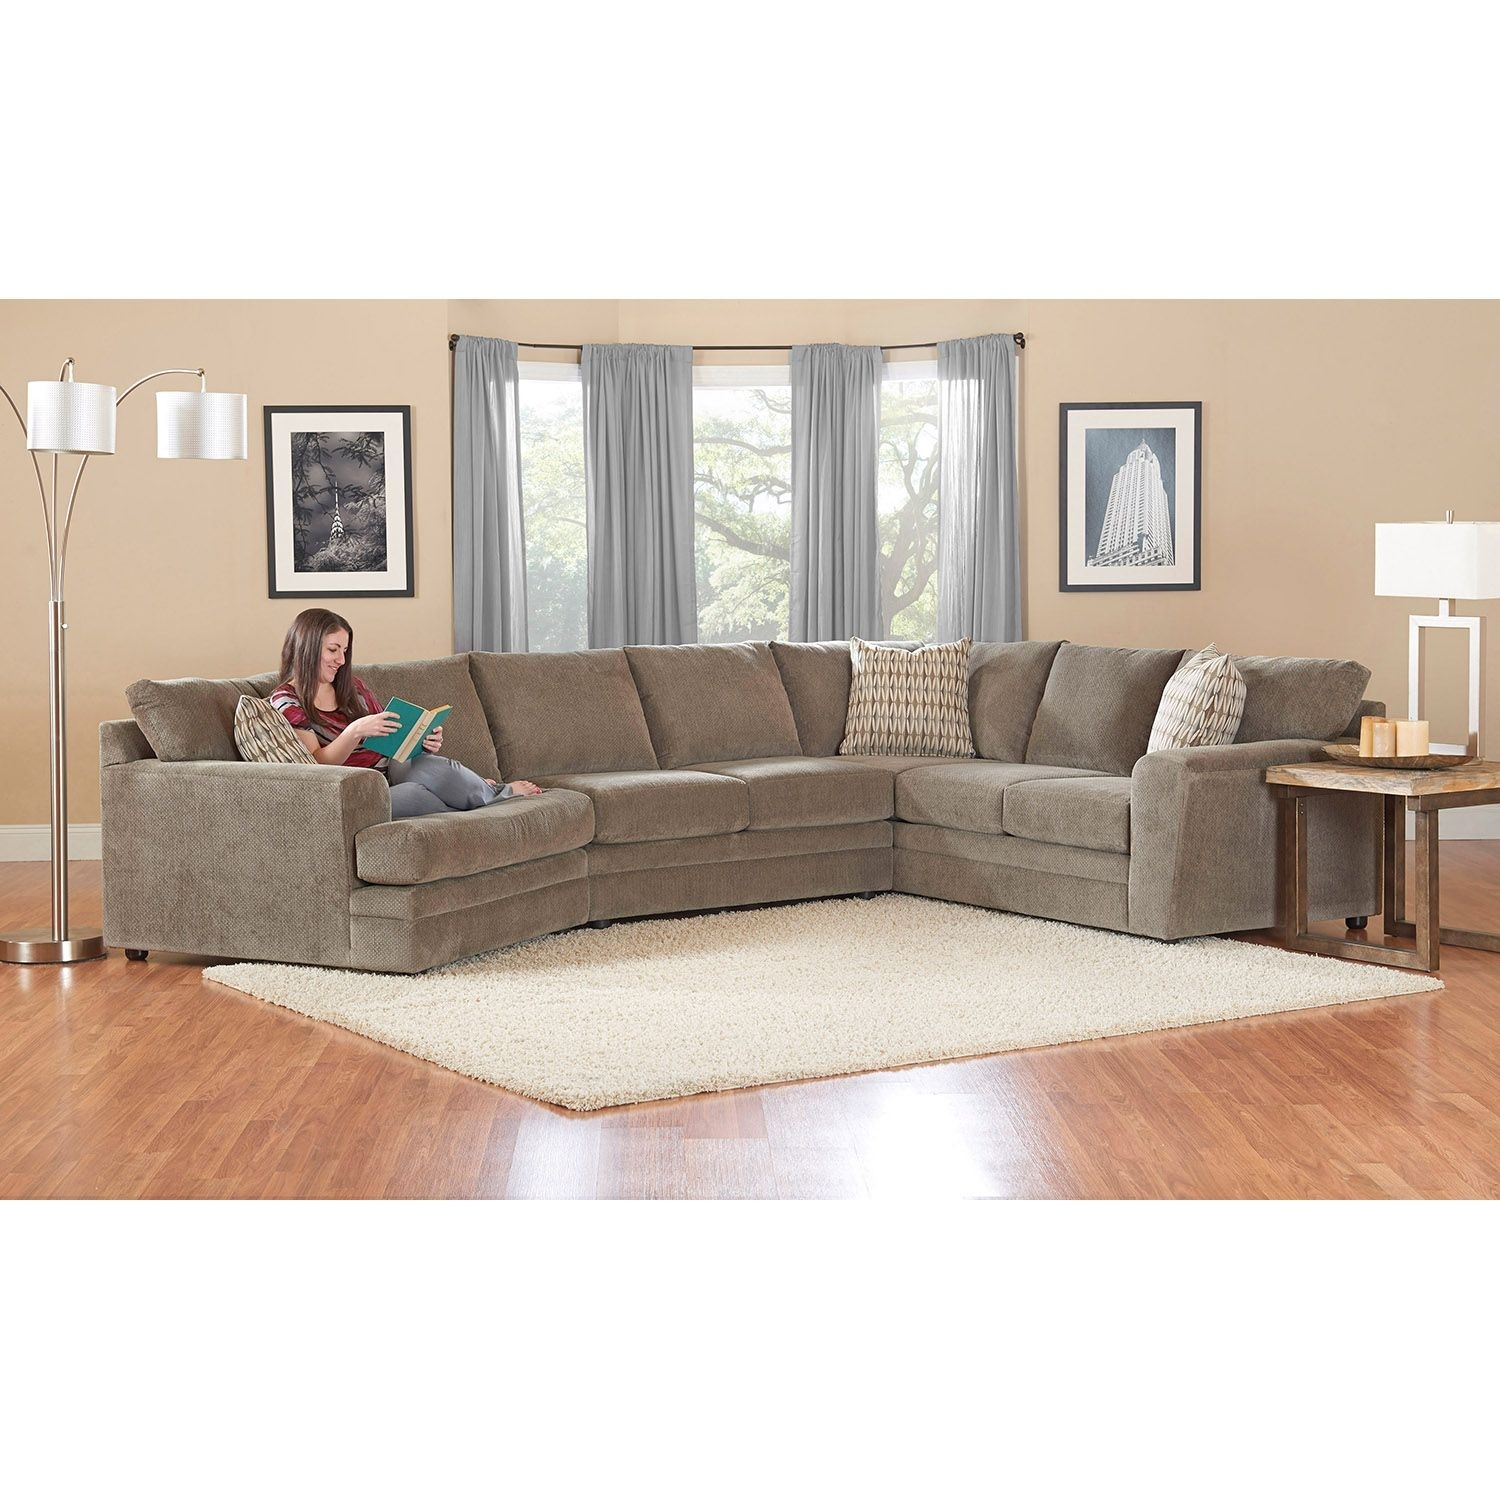 Popular Photo of Sectional Sofas At Sam's Club